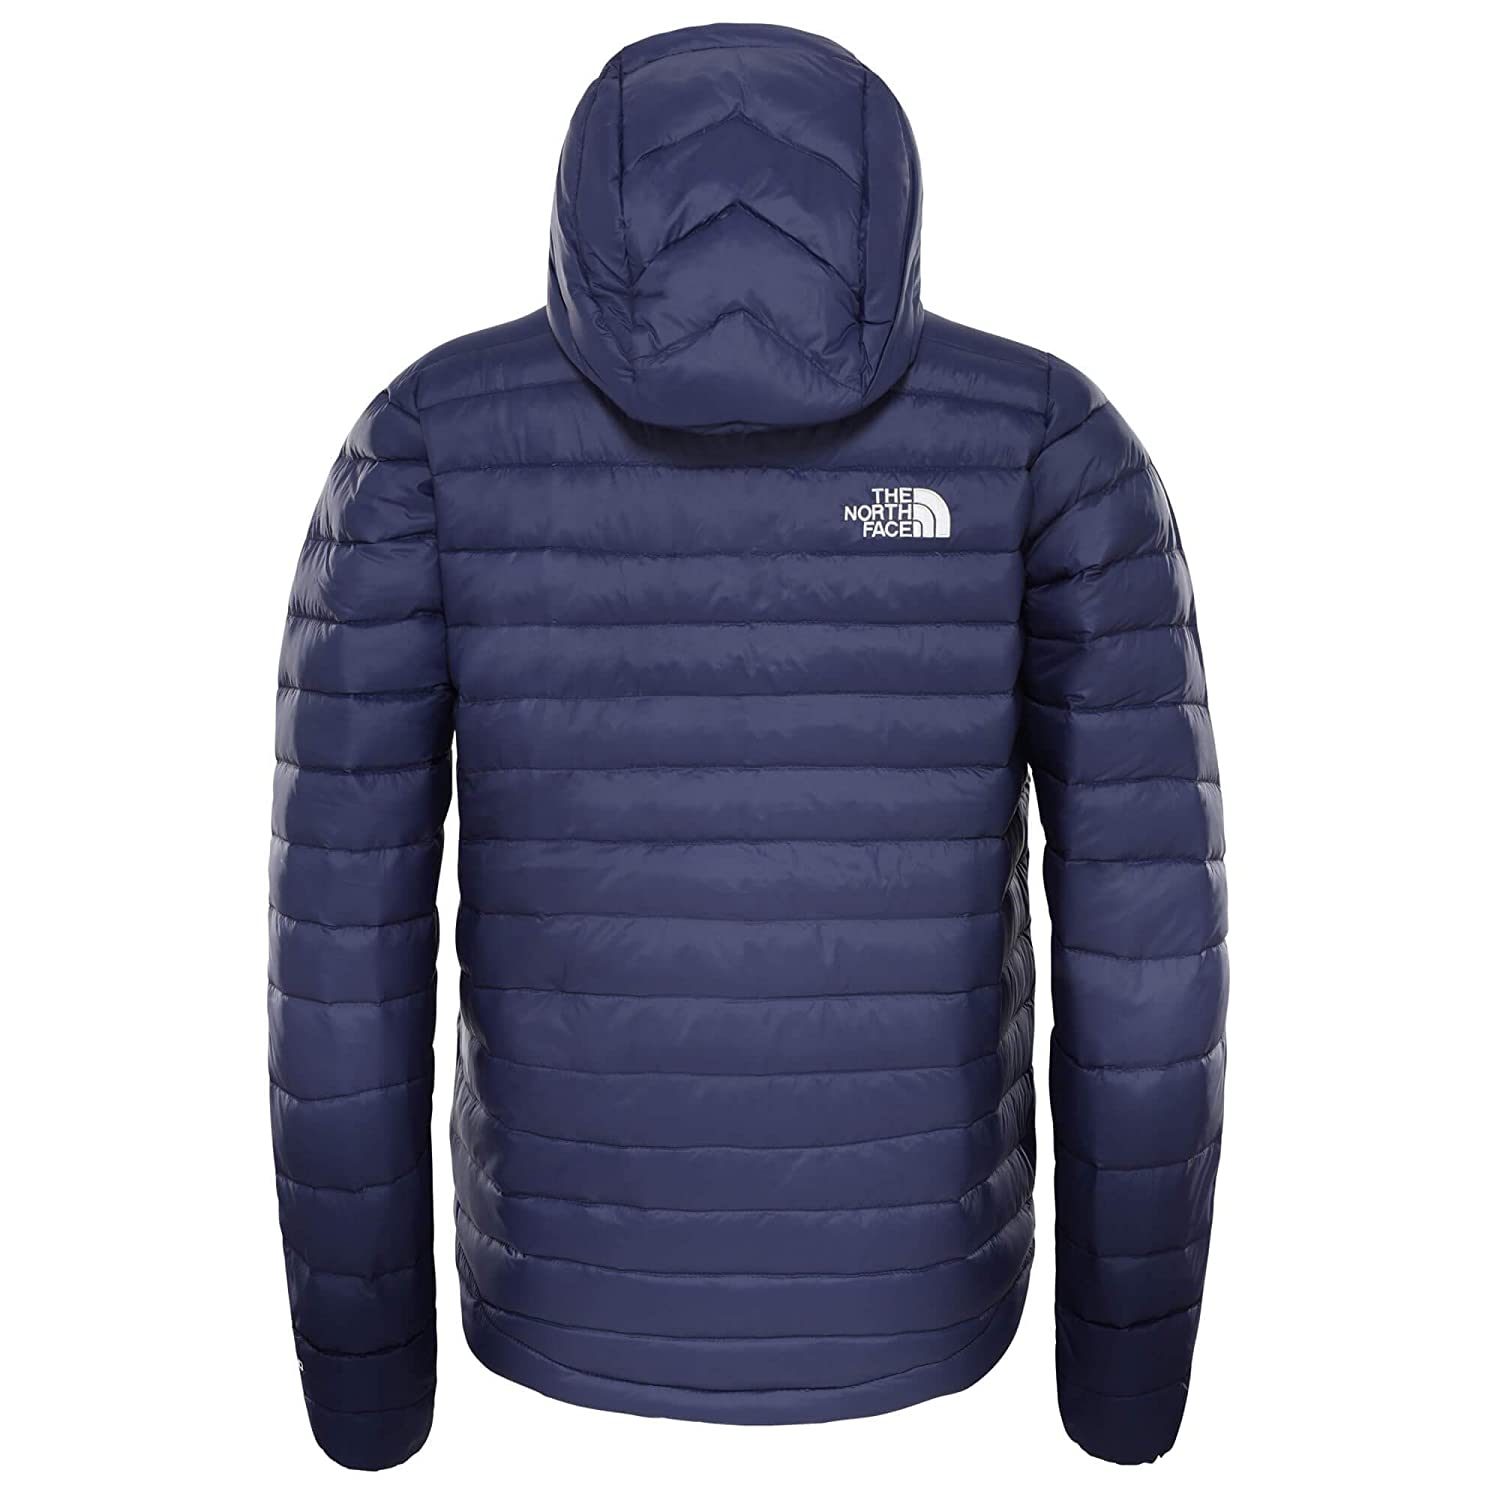 19c796e55 THE NORTH FACE Children's Aconcagua Down Hoodie Insulated Down ...